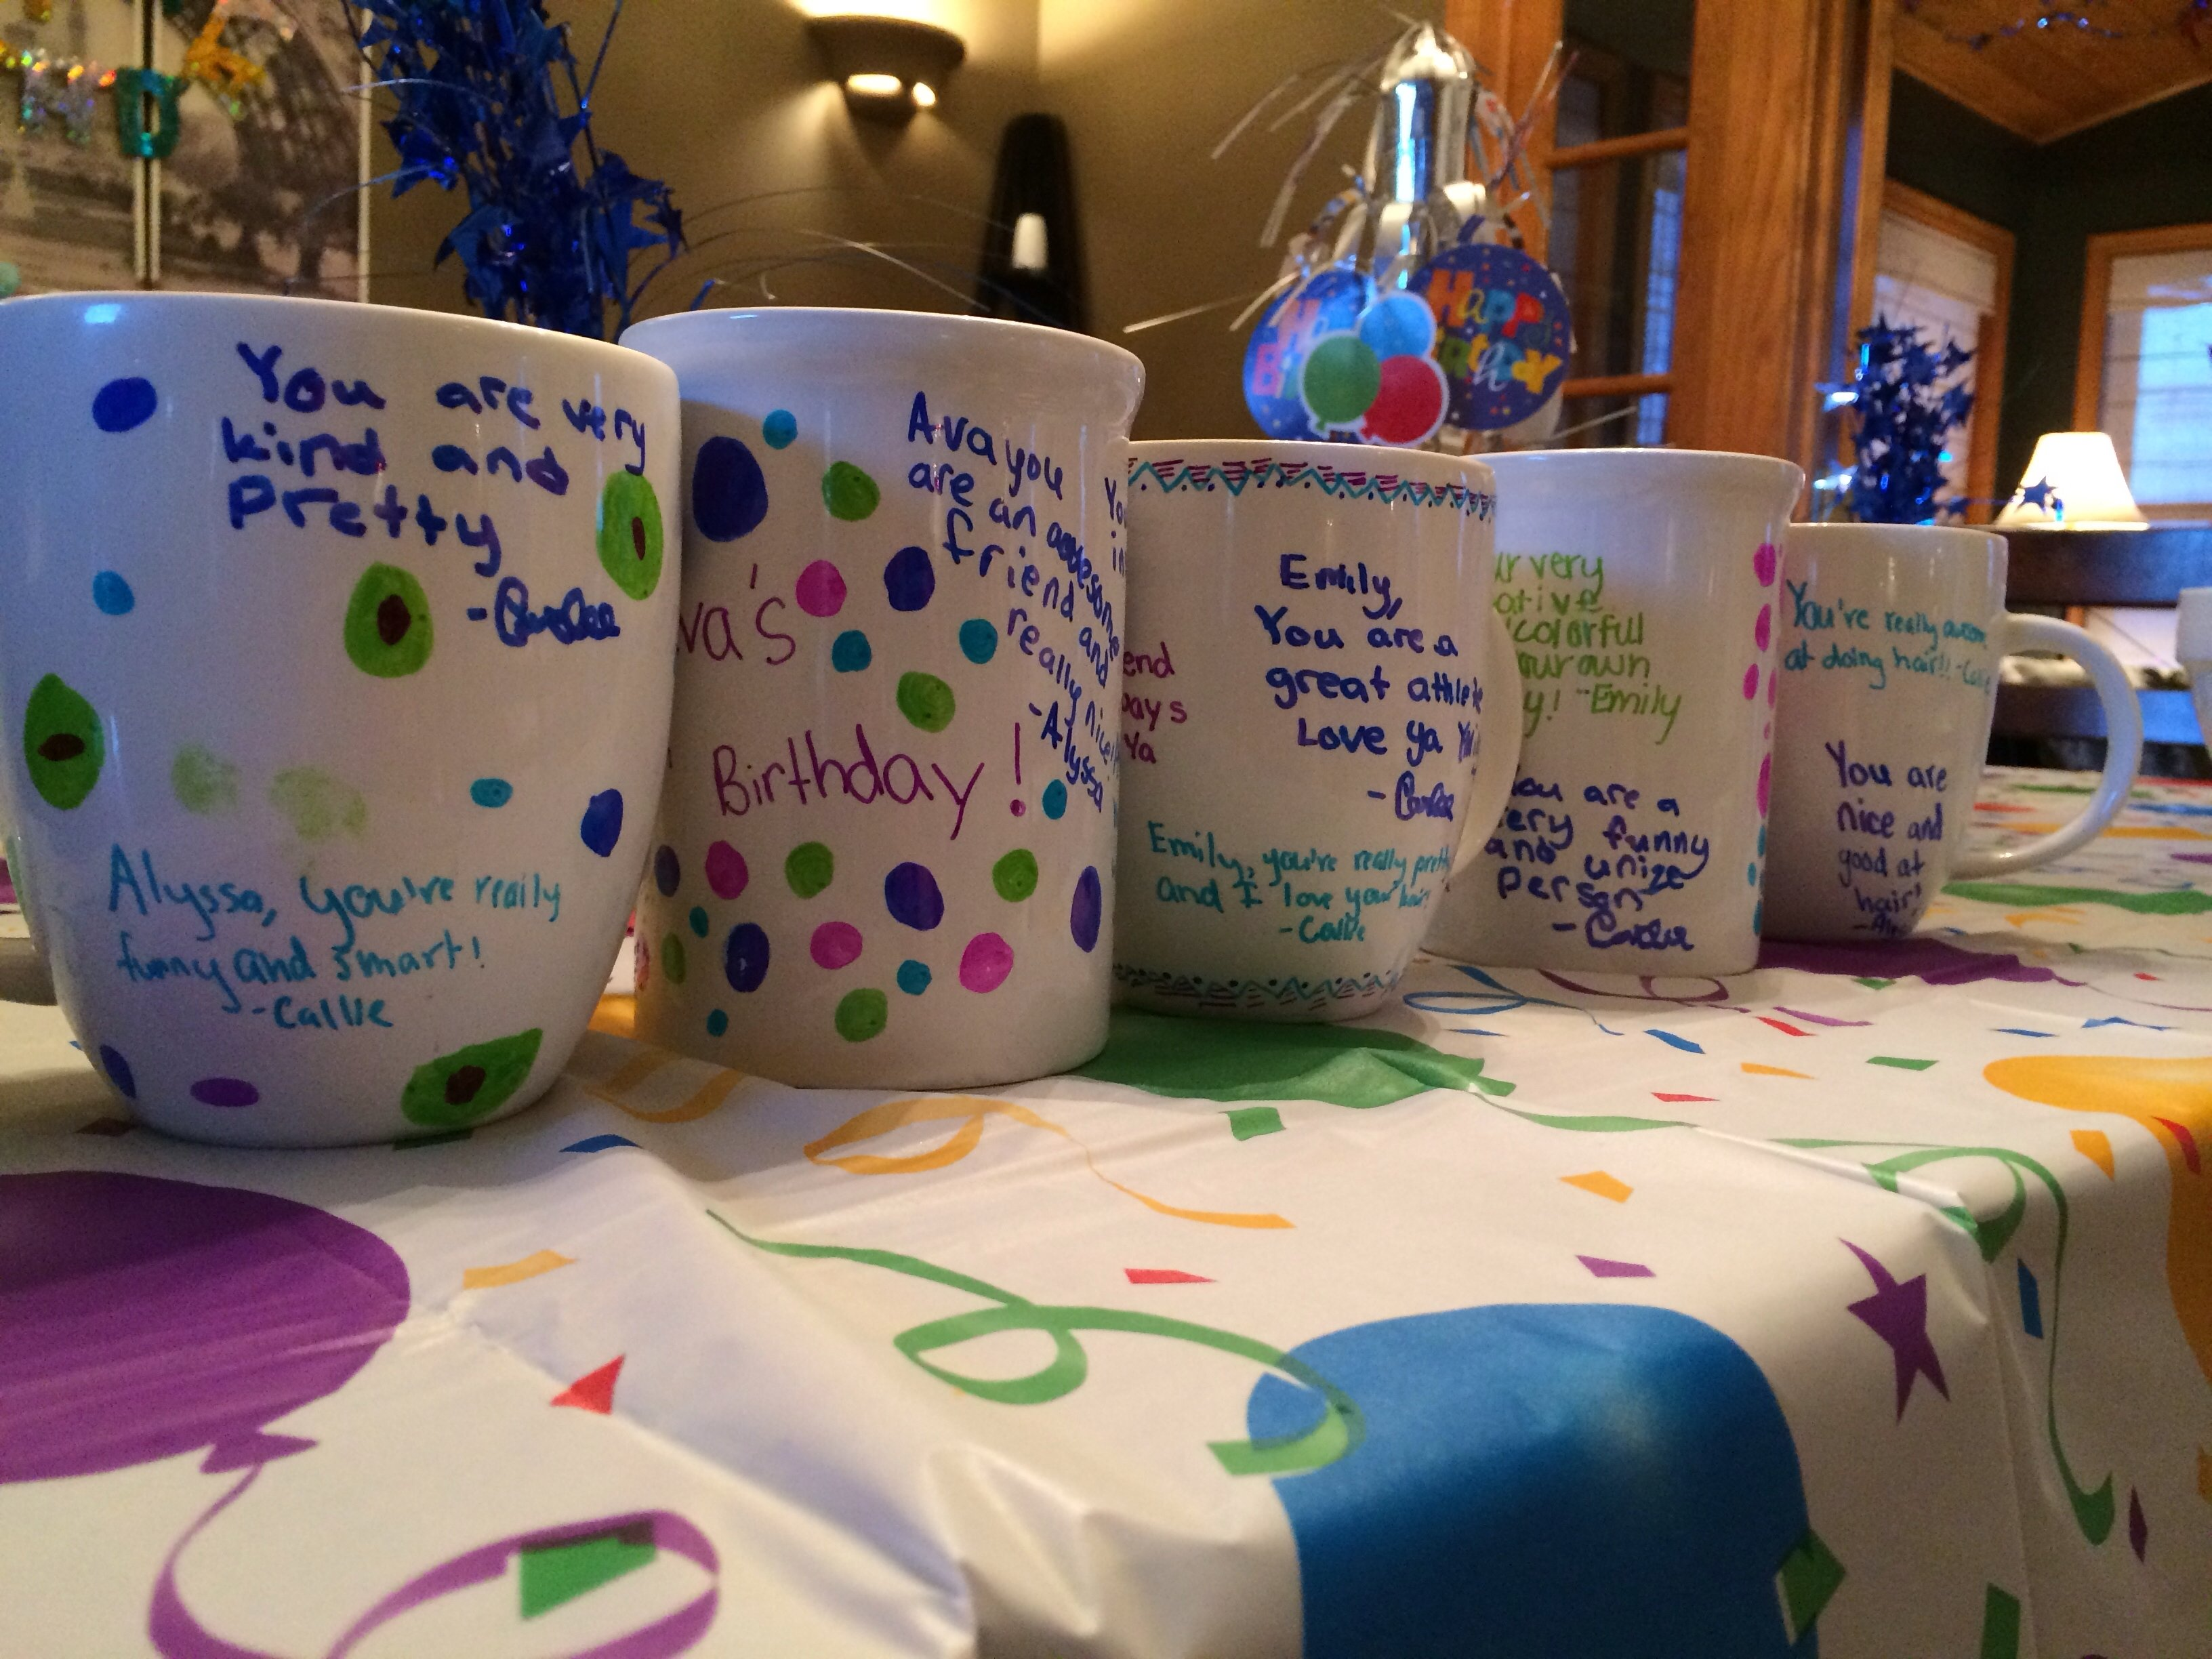 10 Best Birthday Party Ideas For A 12 Year Old Girl slumber party invitation ideas homemade sharpie mugs birthday fun 7 2021